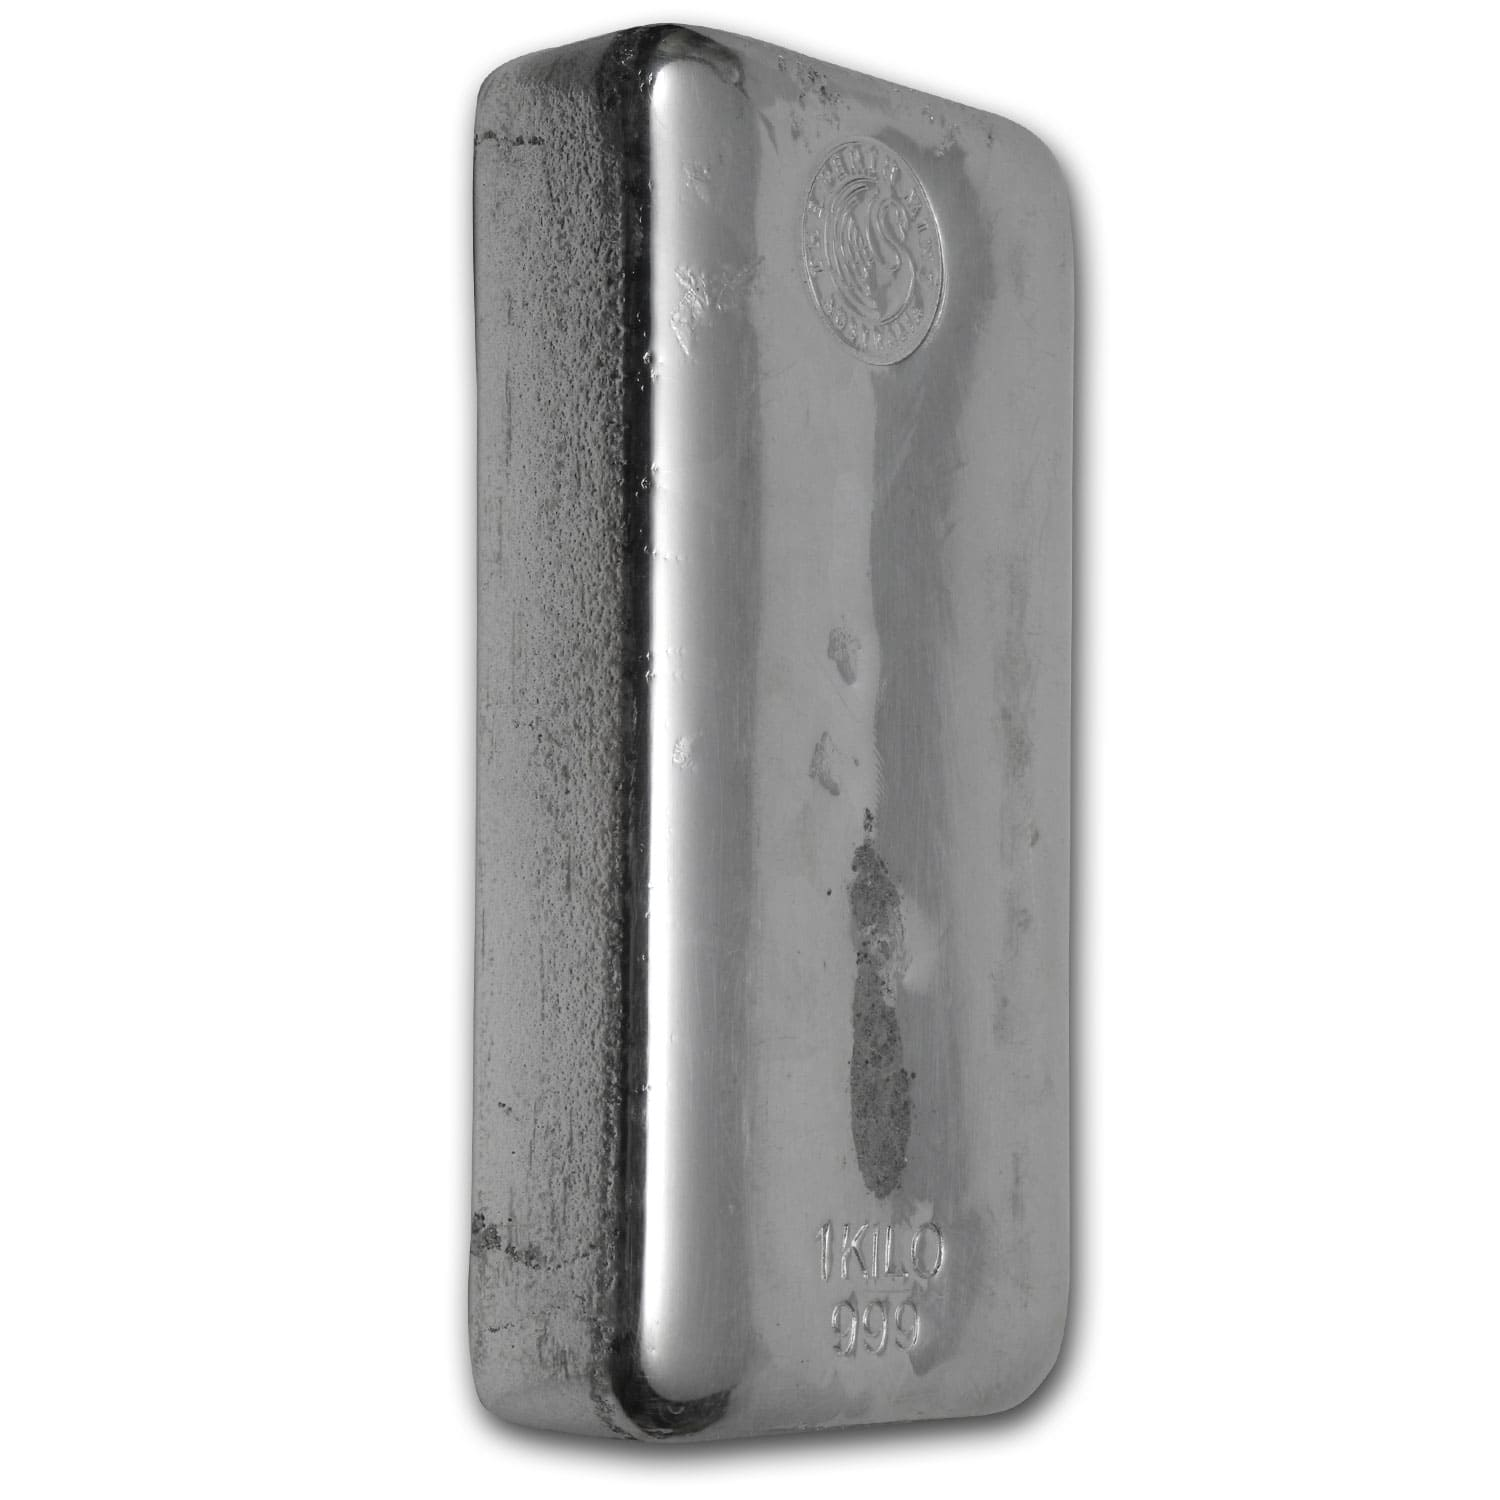 1 Kilo Silver Bars - Perth Mint